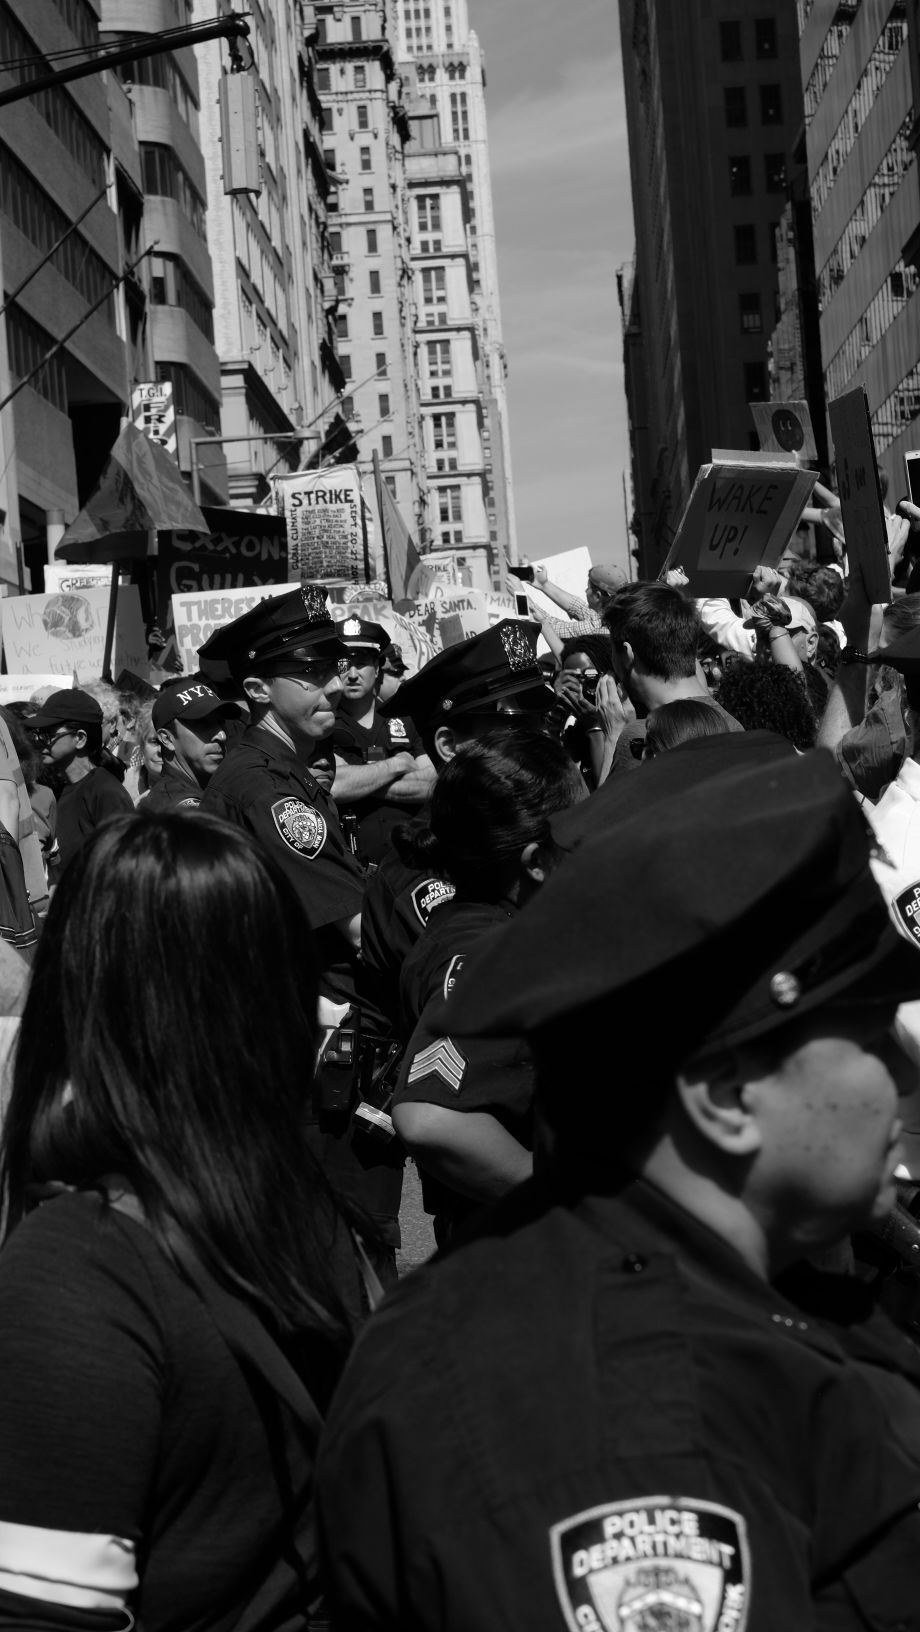 """Wake up!"" – Cops mill around as the march pauses for a moment"